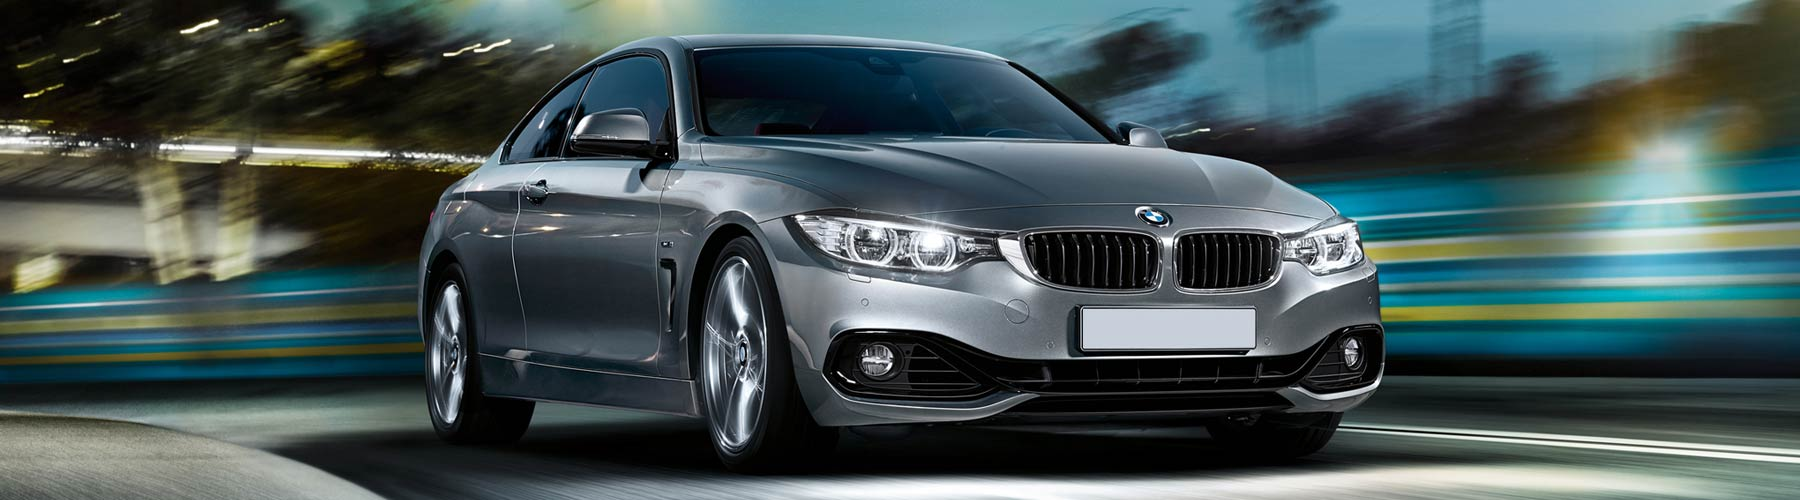 Stokes and Renk BMW Service Perth